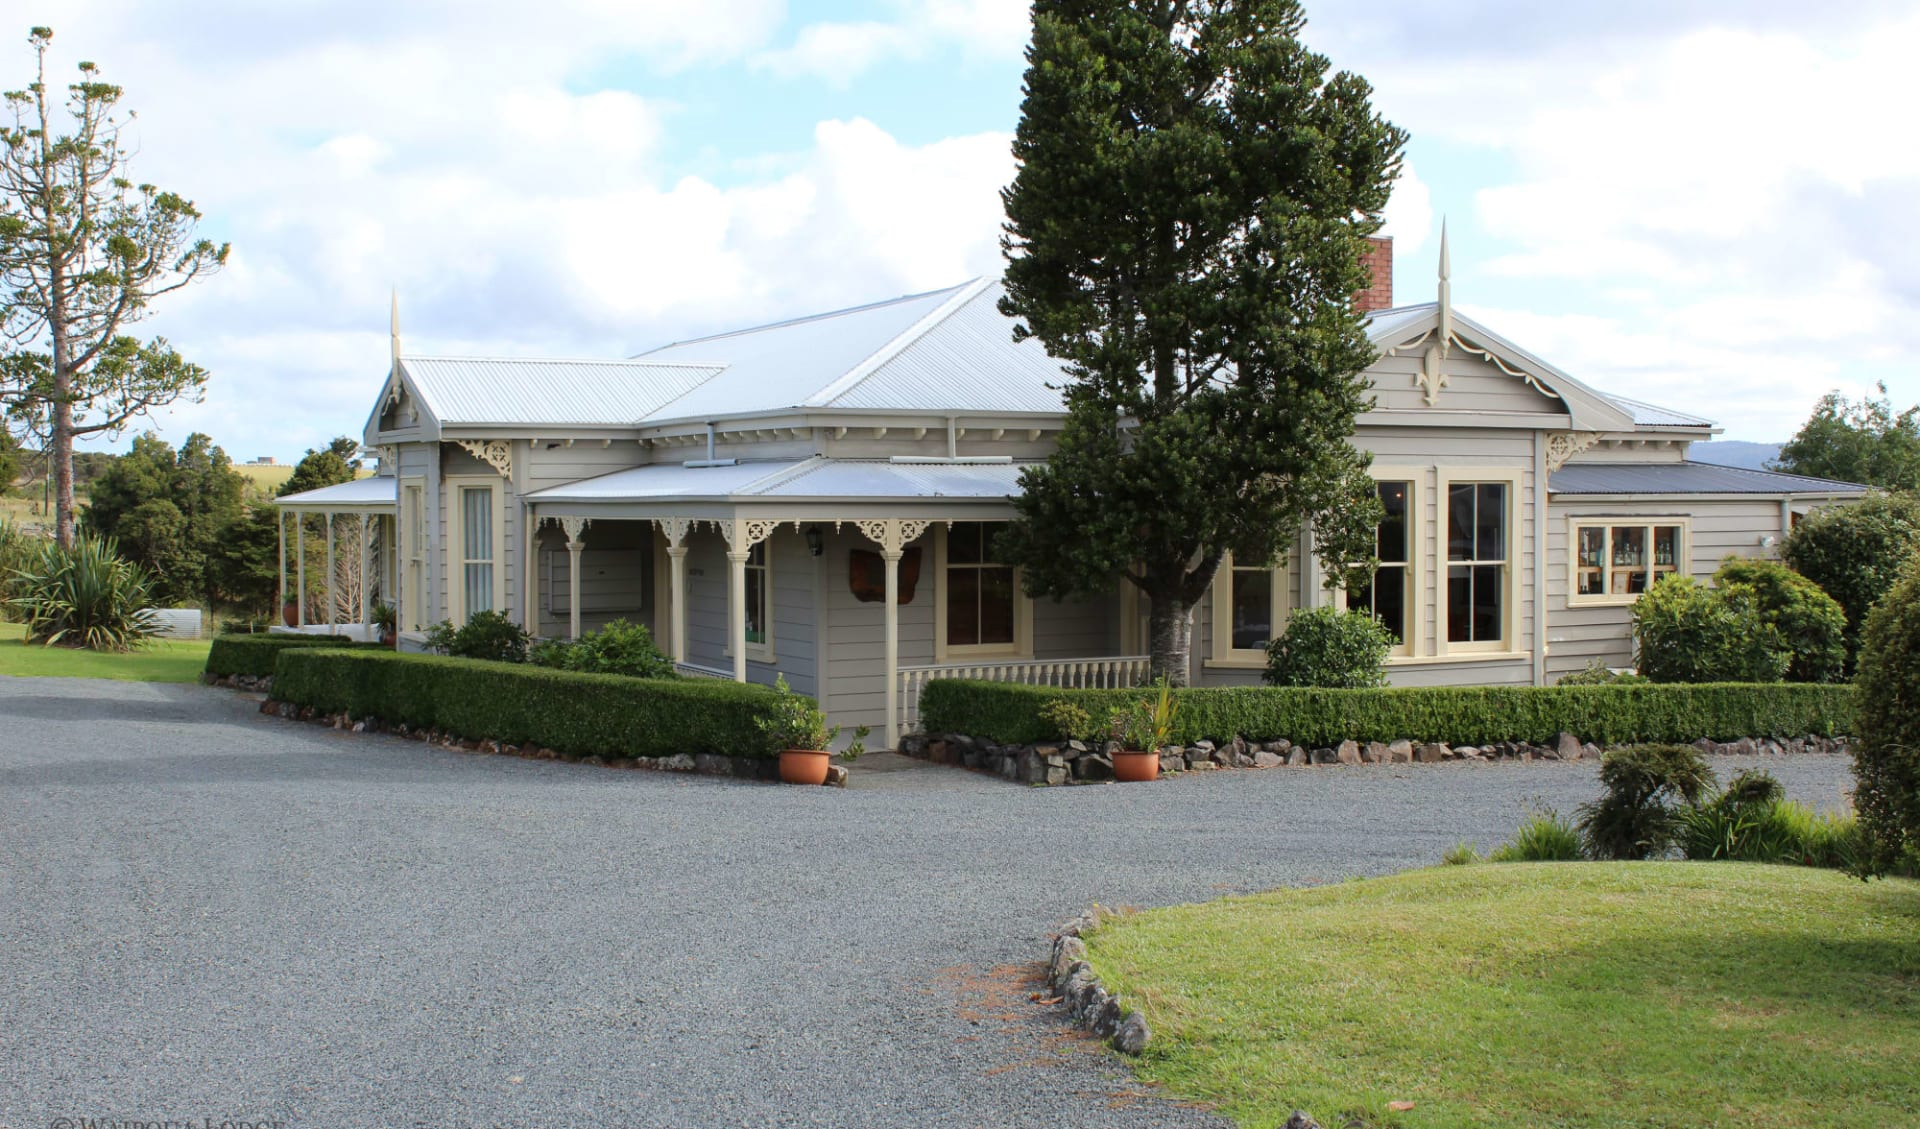 Waipoua Lodge in Dargaville:  Waipoua Lodge - Ansicht